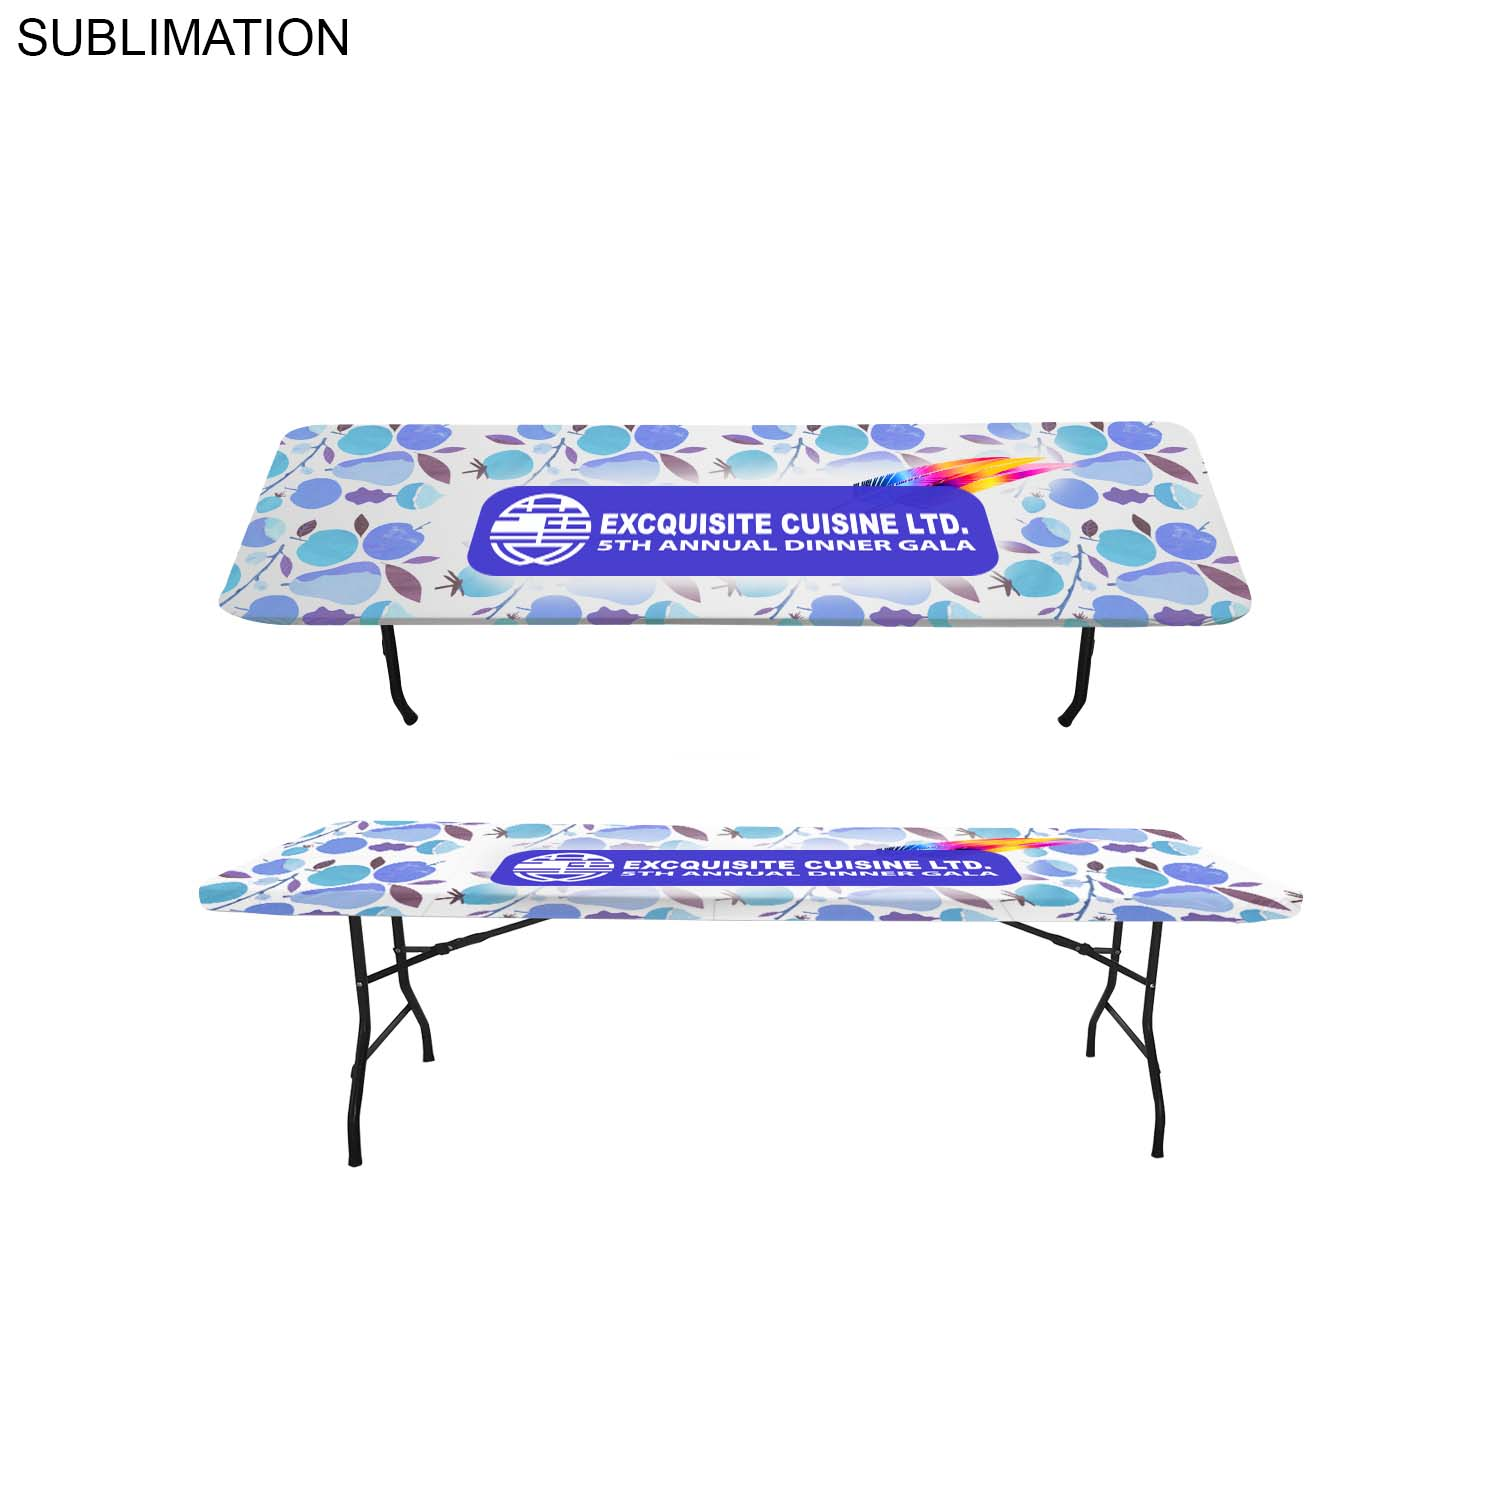 8' Stretch Fit Table Topper SU605, Full Colour Imprint